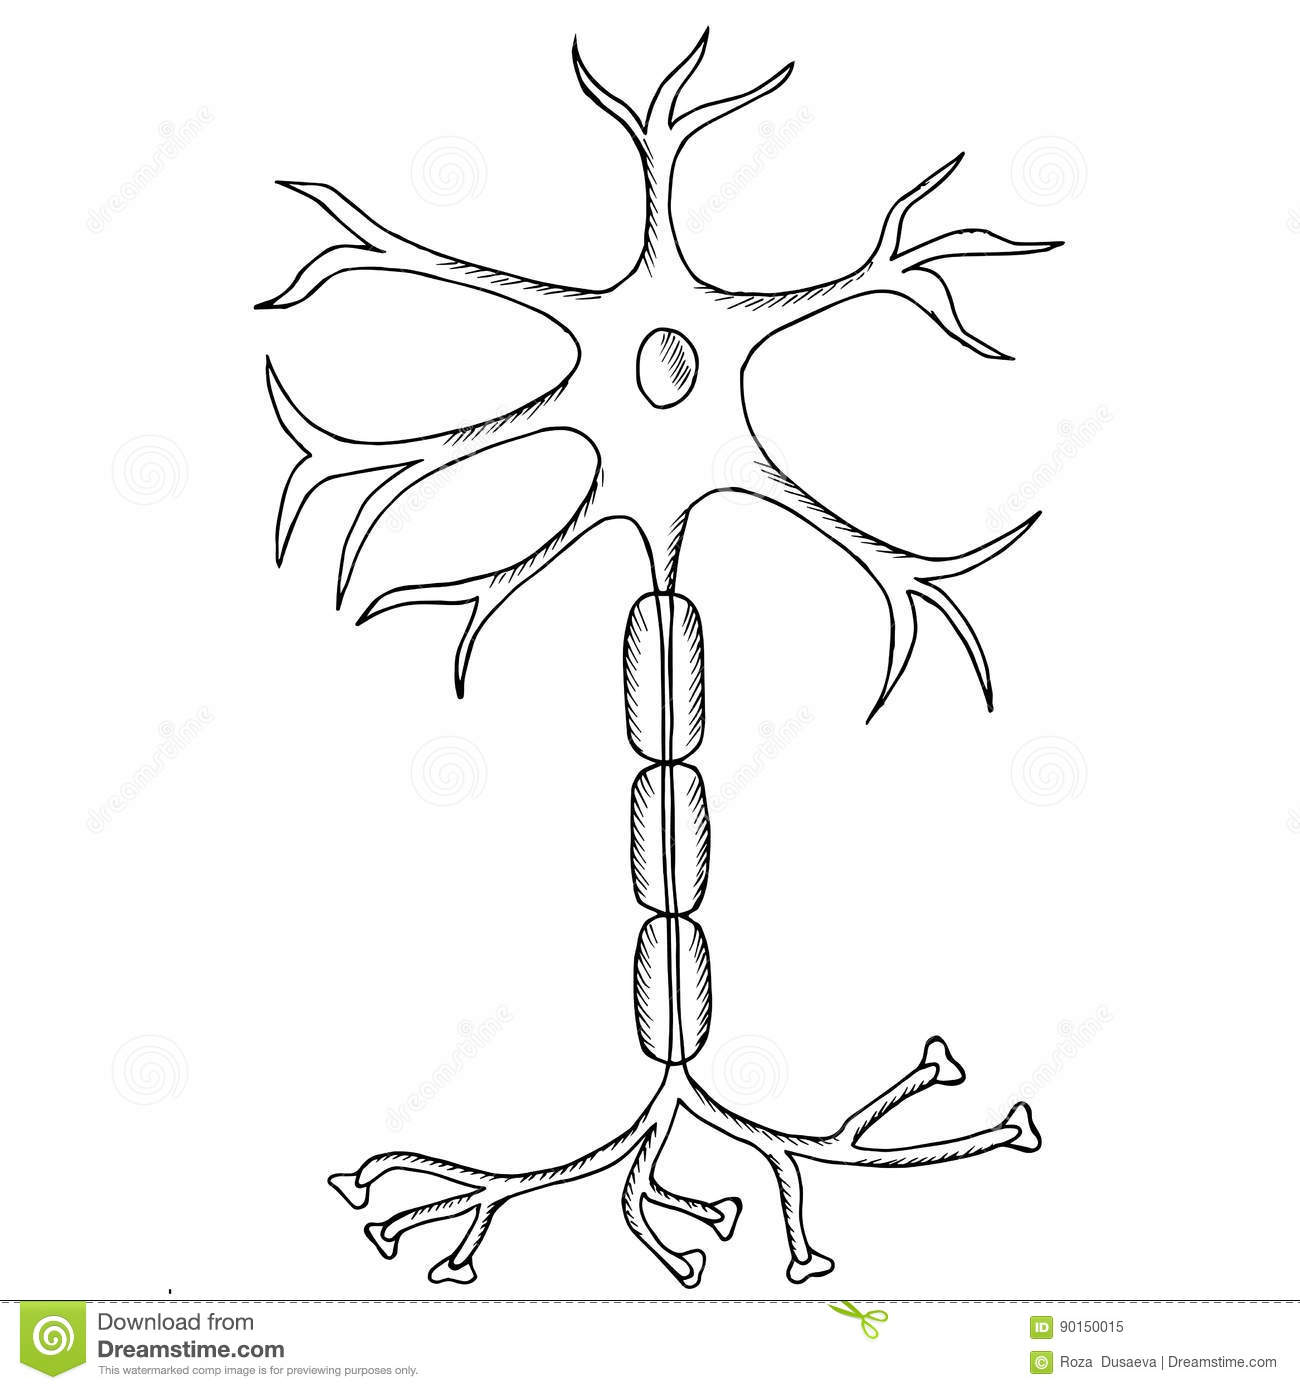 Neuron Sketch Stock Vector Illustration Of Neurology